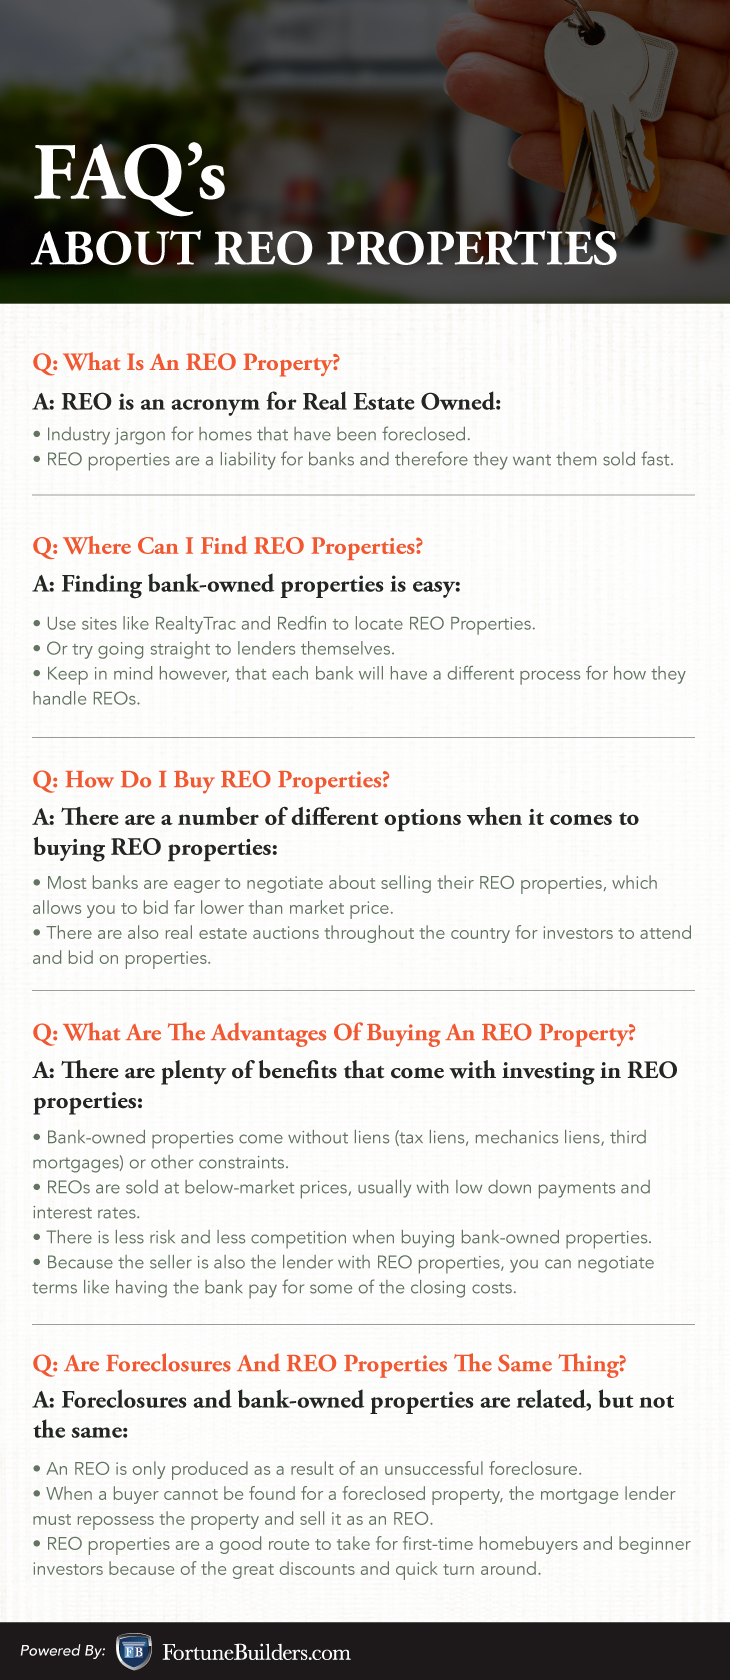 Buying Bank Owned Properties Pros And Cons